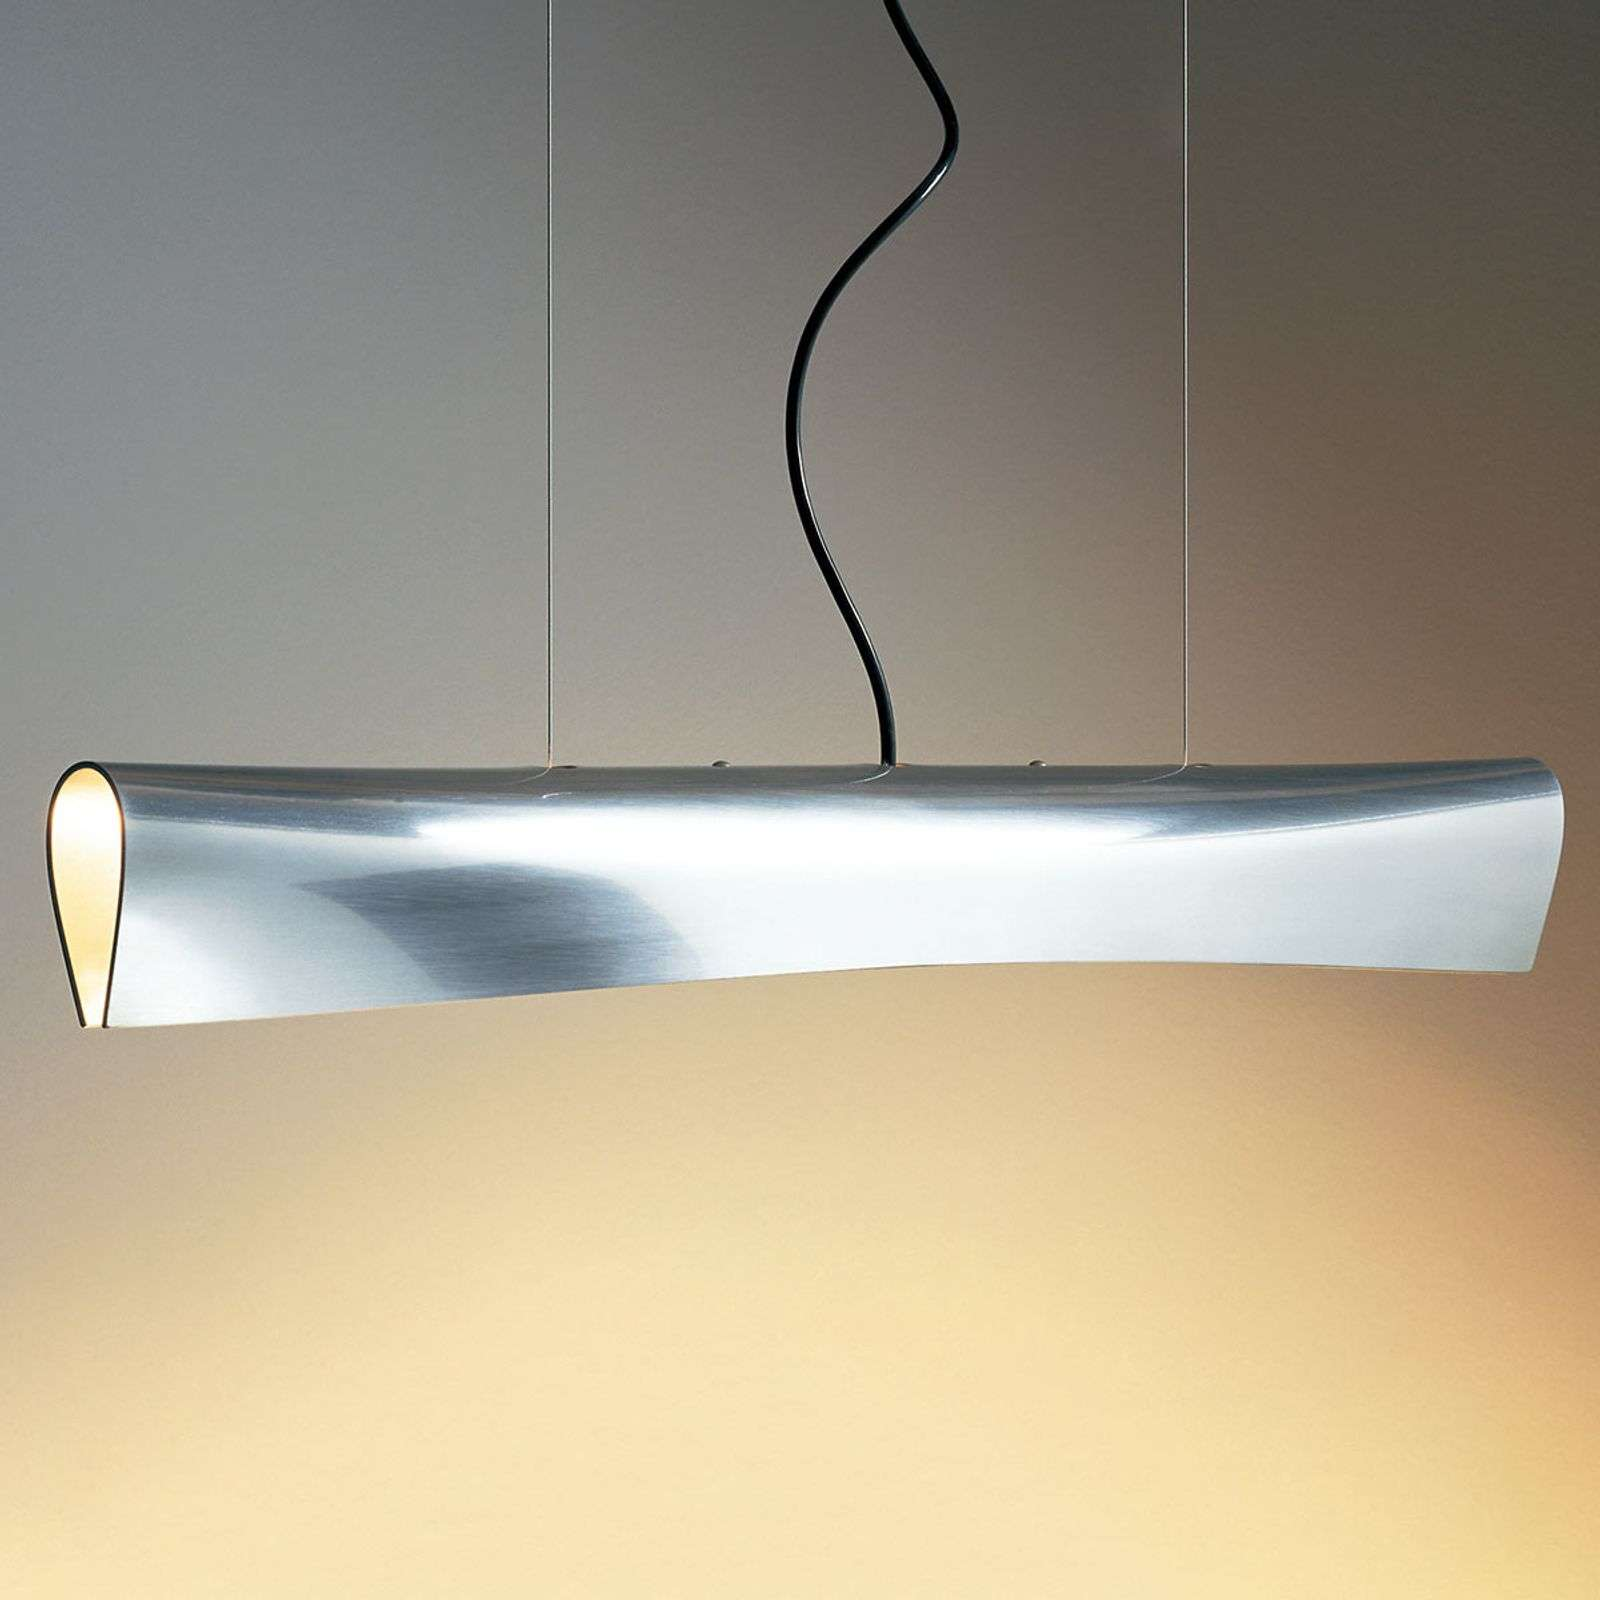 Suspension LED de designer Nil, câble noir